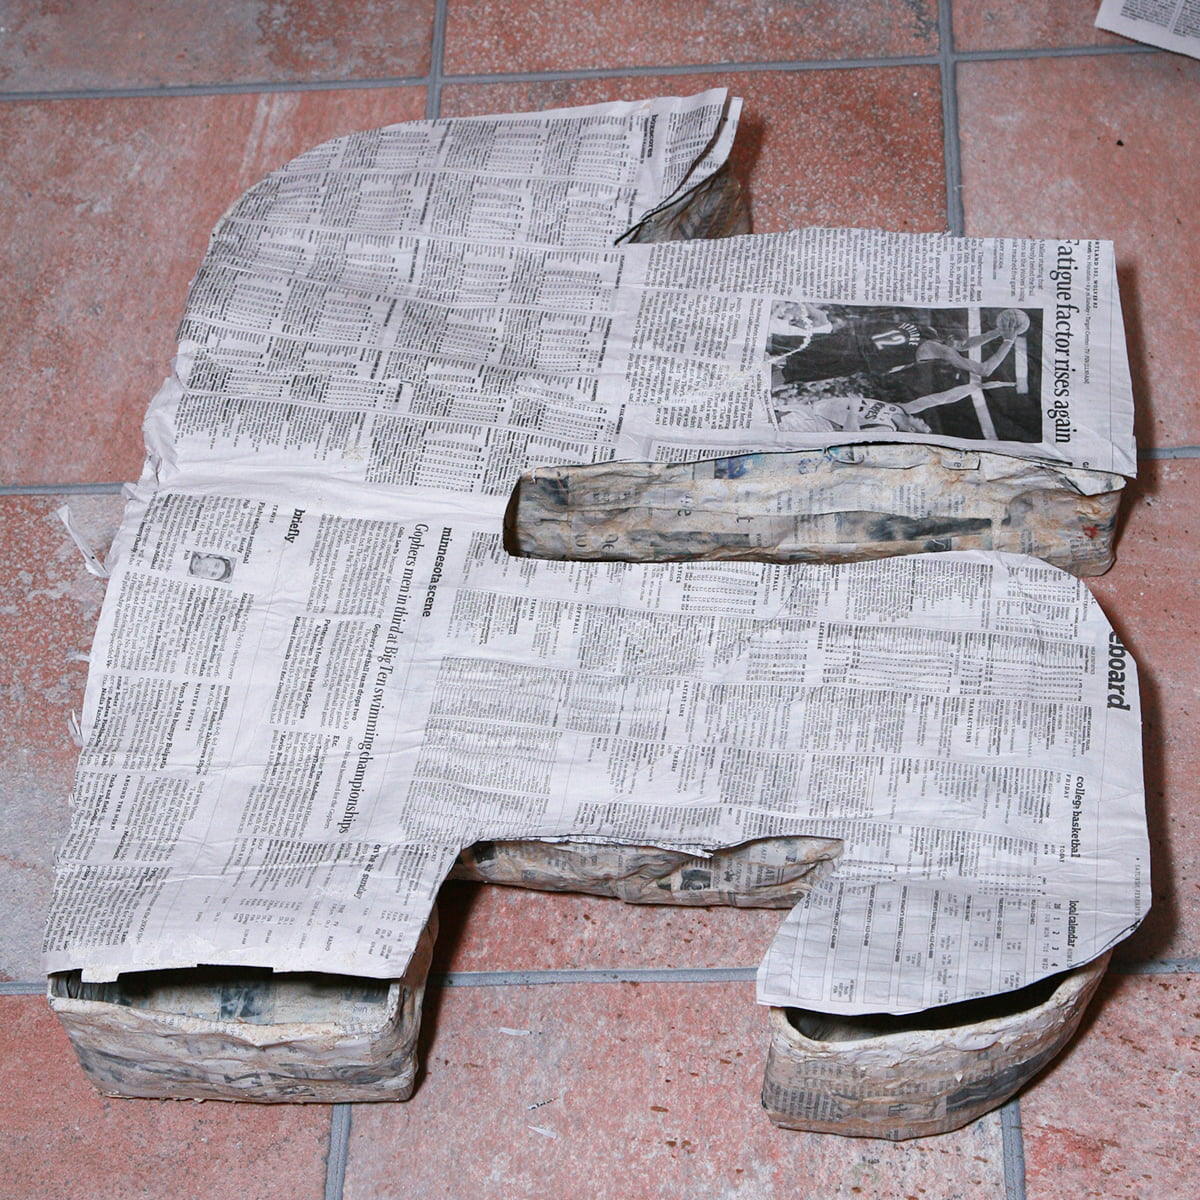 A pi shape is cut out from the sheet of flat paper mache, and placed on top of the main pi shape, as a cover.